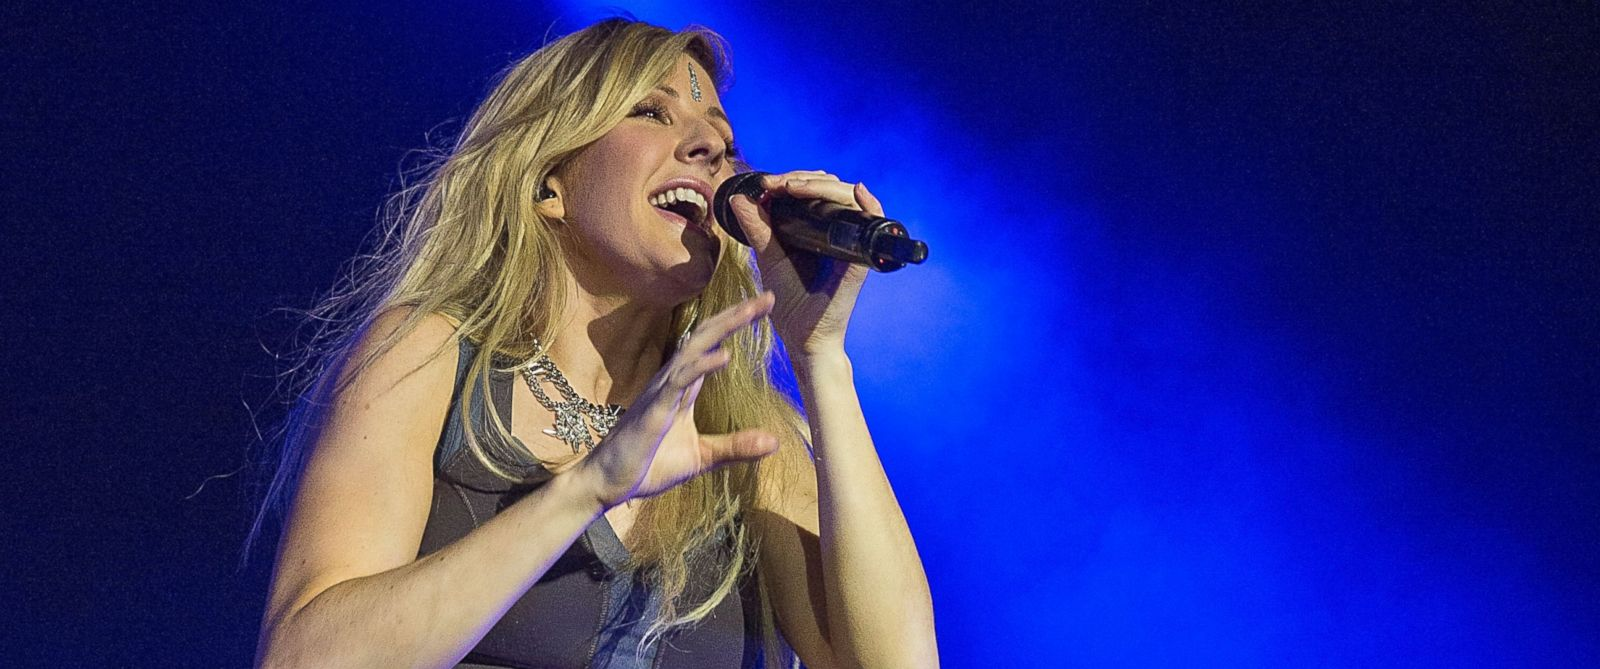 PHOTO: Ellie Goulding performs on March 22, 2014 in Austin, Texas.